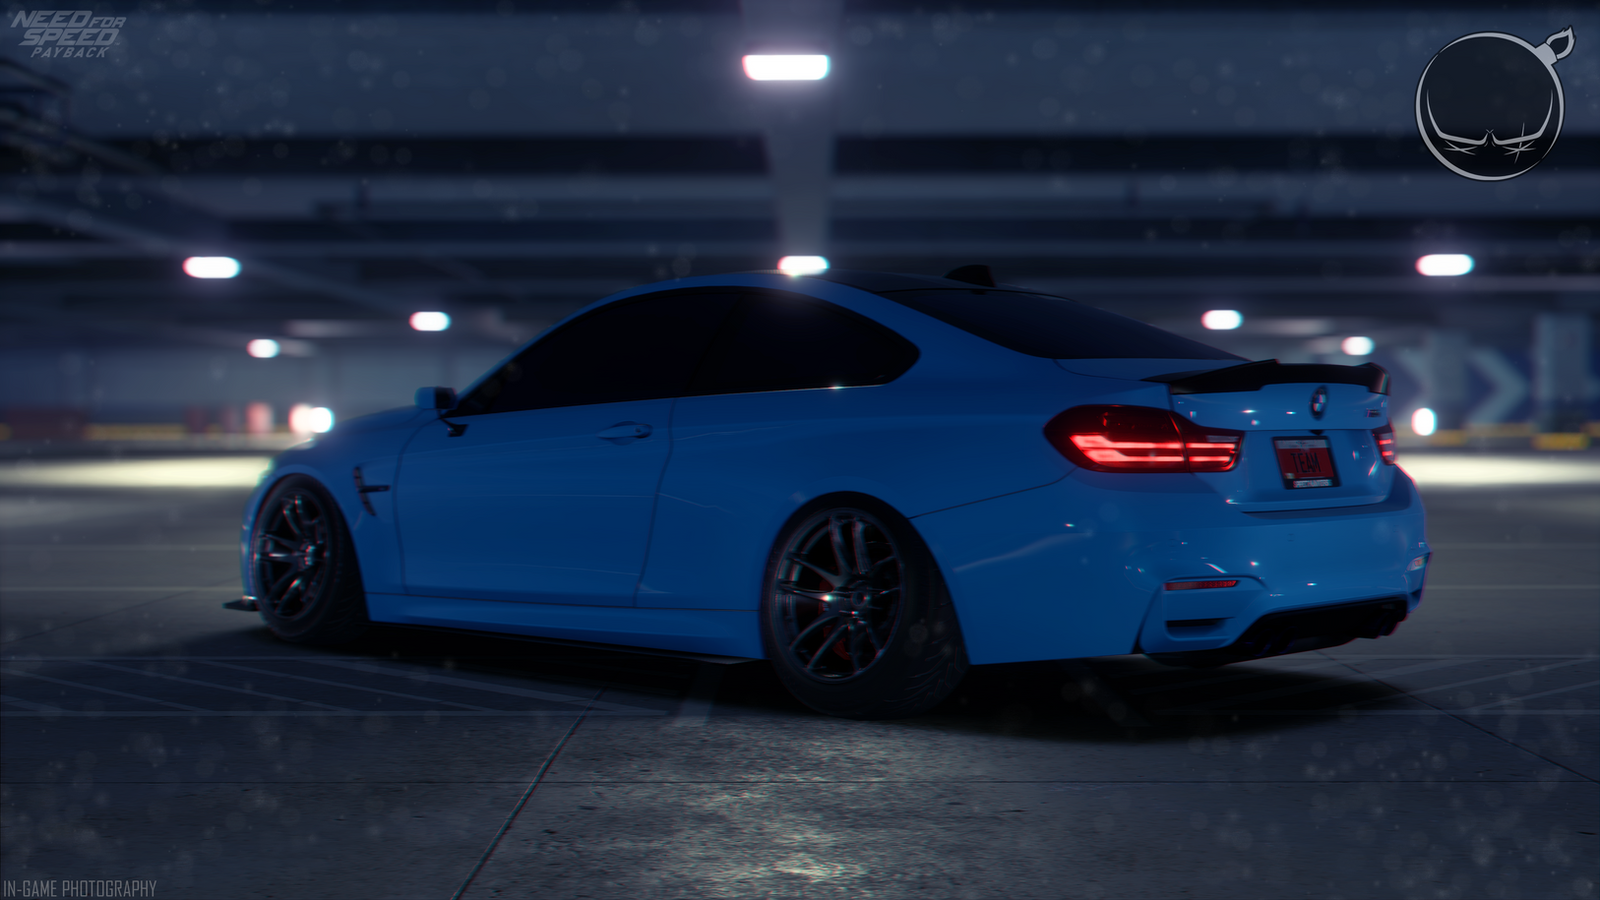 need for speed payback photo 002 bmw m4 by mad rodger on deviantart. Black Bedroom Furniture Sets. Home Design Ideas